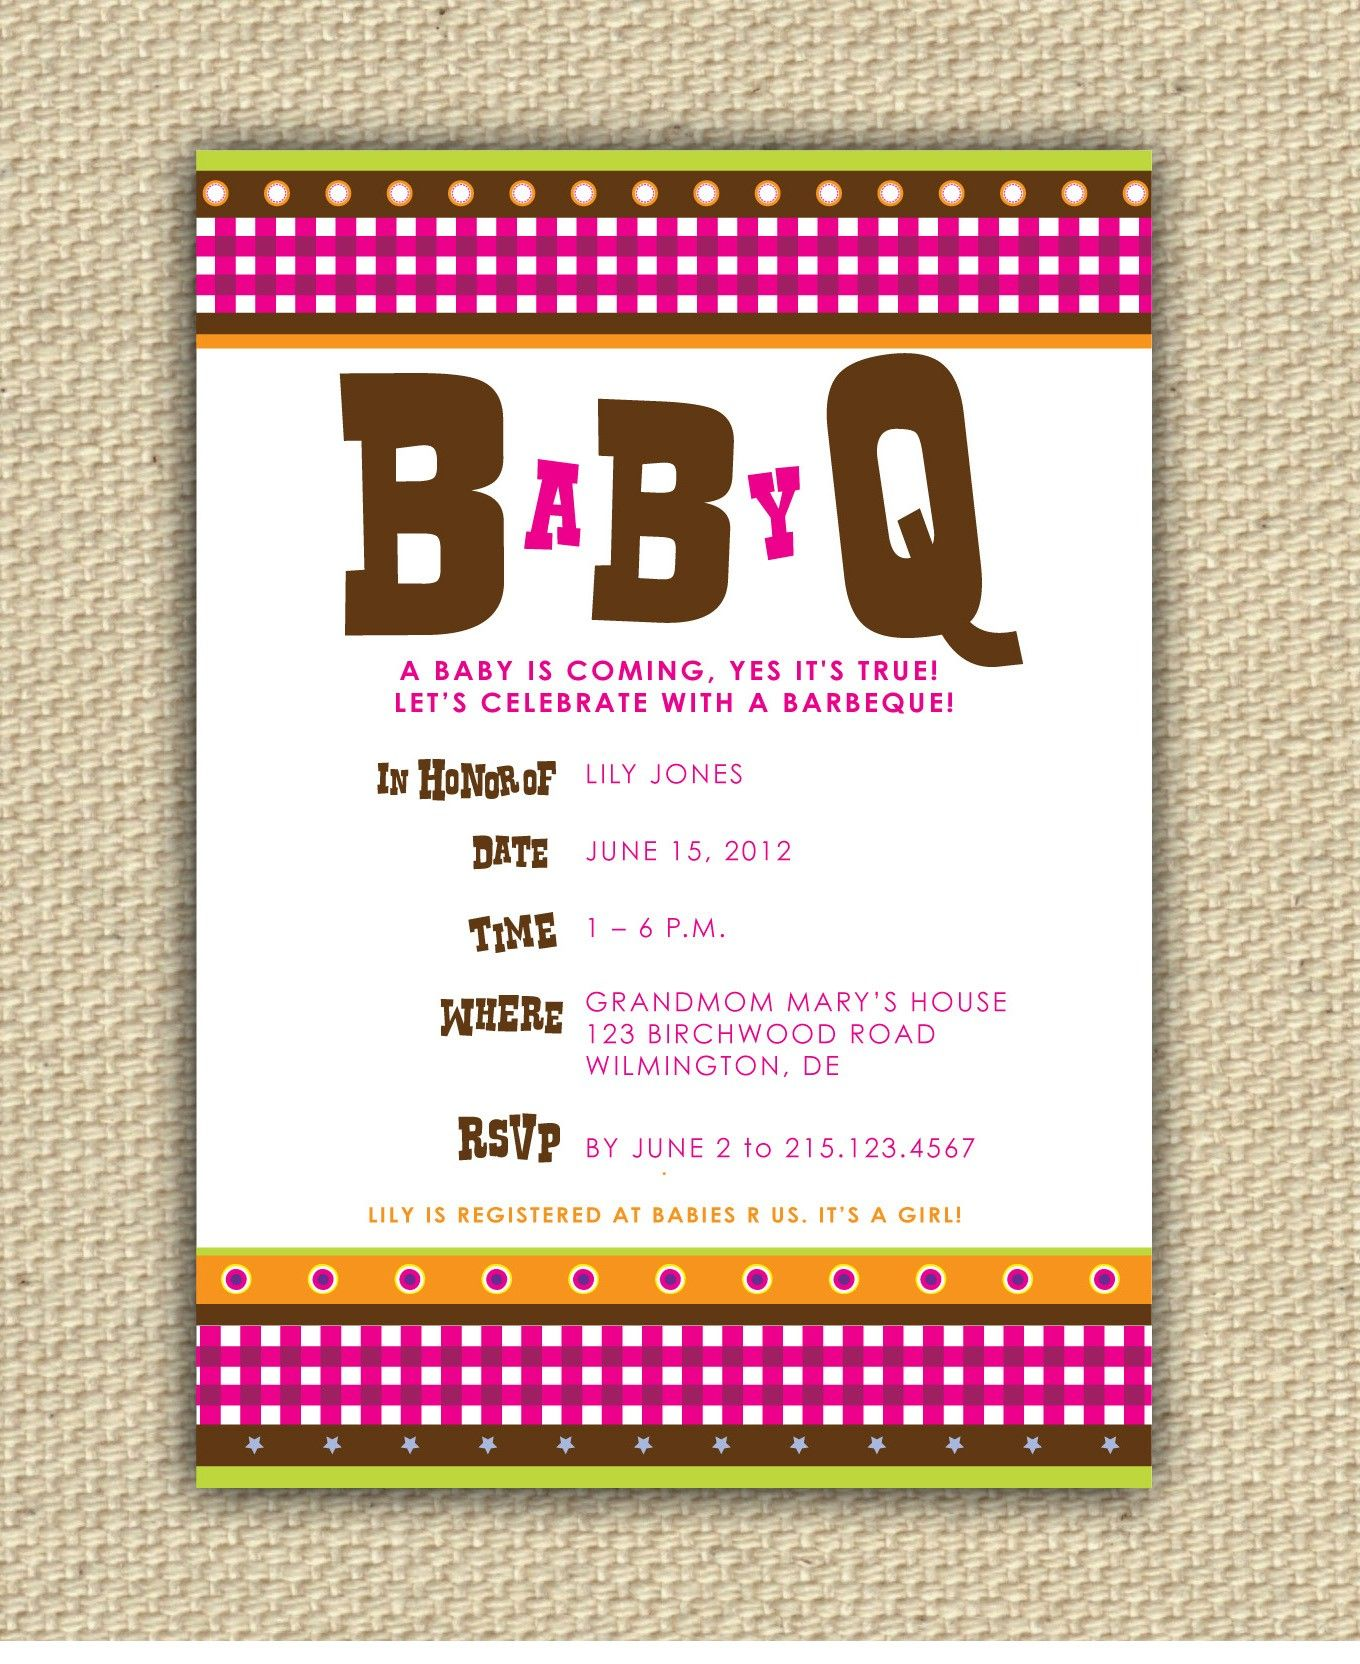 Baby BBQ Shower Invitation BaByQ by stacey0803 on Etsy, $20.00 ...